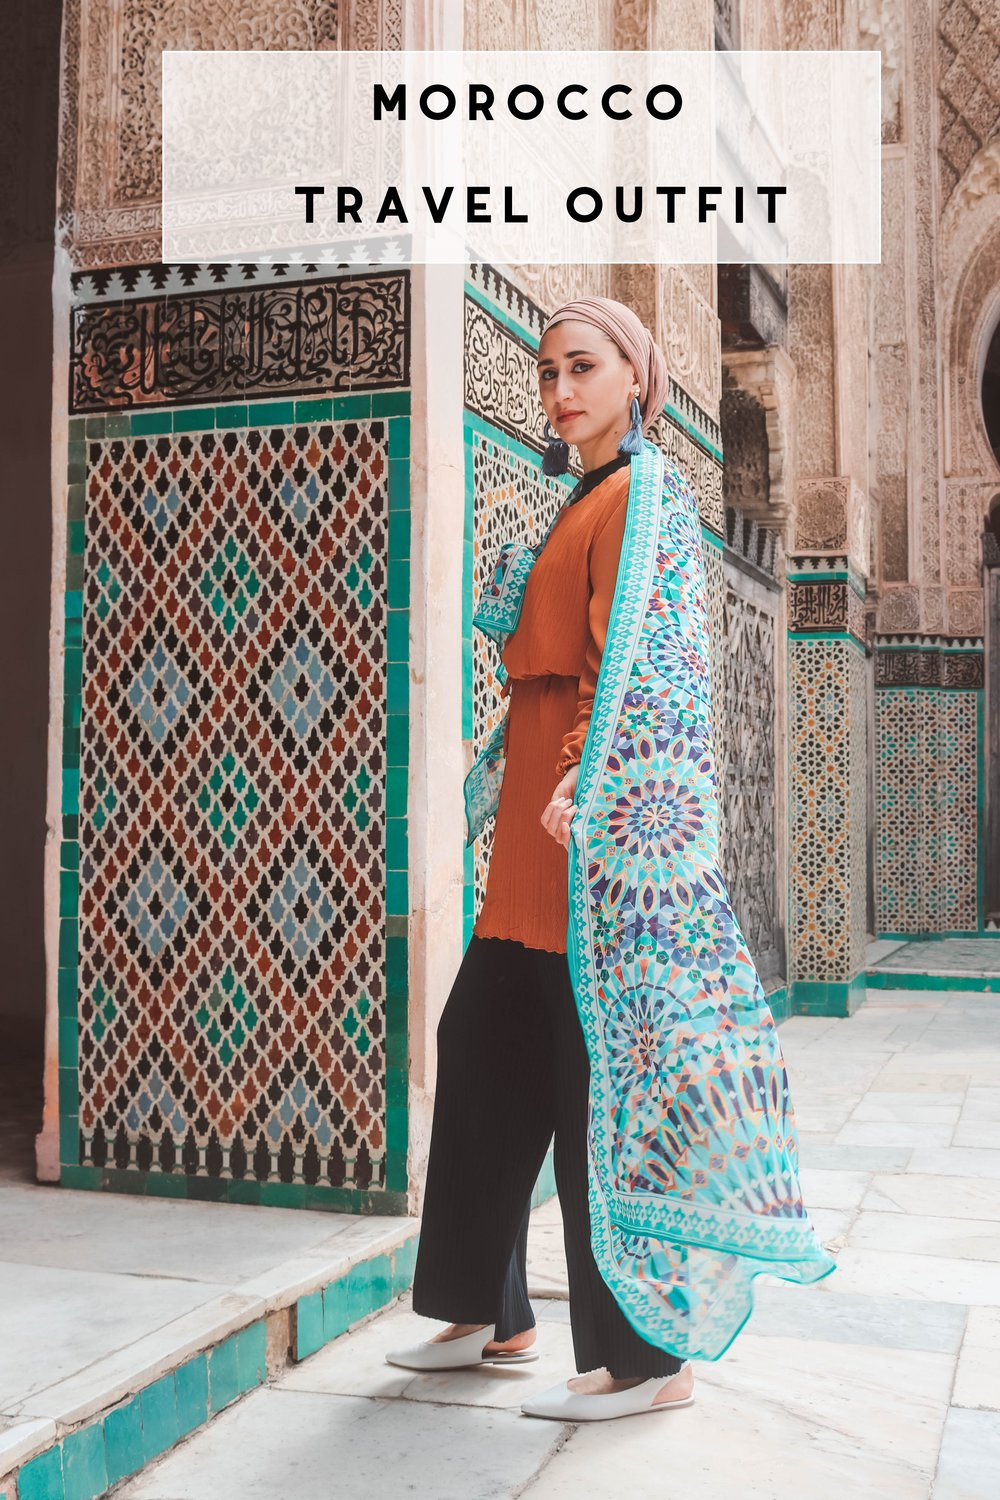 fez-morocco what to wear in morocco , morocco outfits karama by hoda arabesque scarf, moroccan scarf, arabesque lifestyle, boho chic boho outfit, geometric scarf mosaic scarf moroccan decor morocco decor nyc  morocco travel outfit